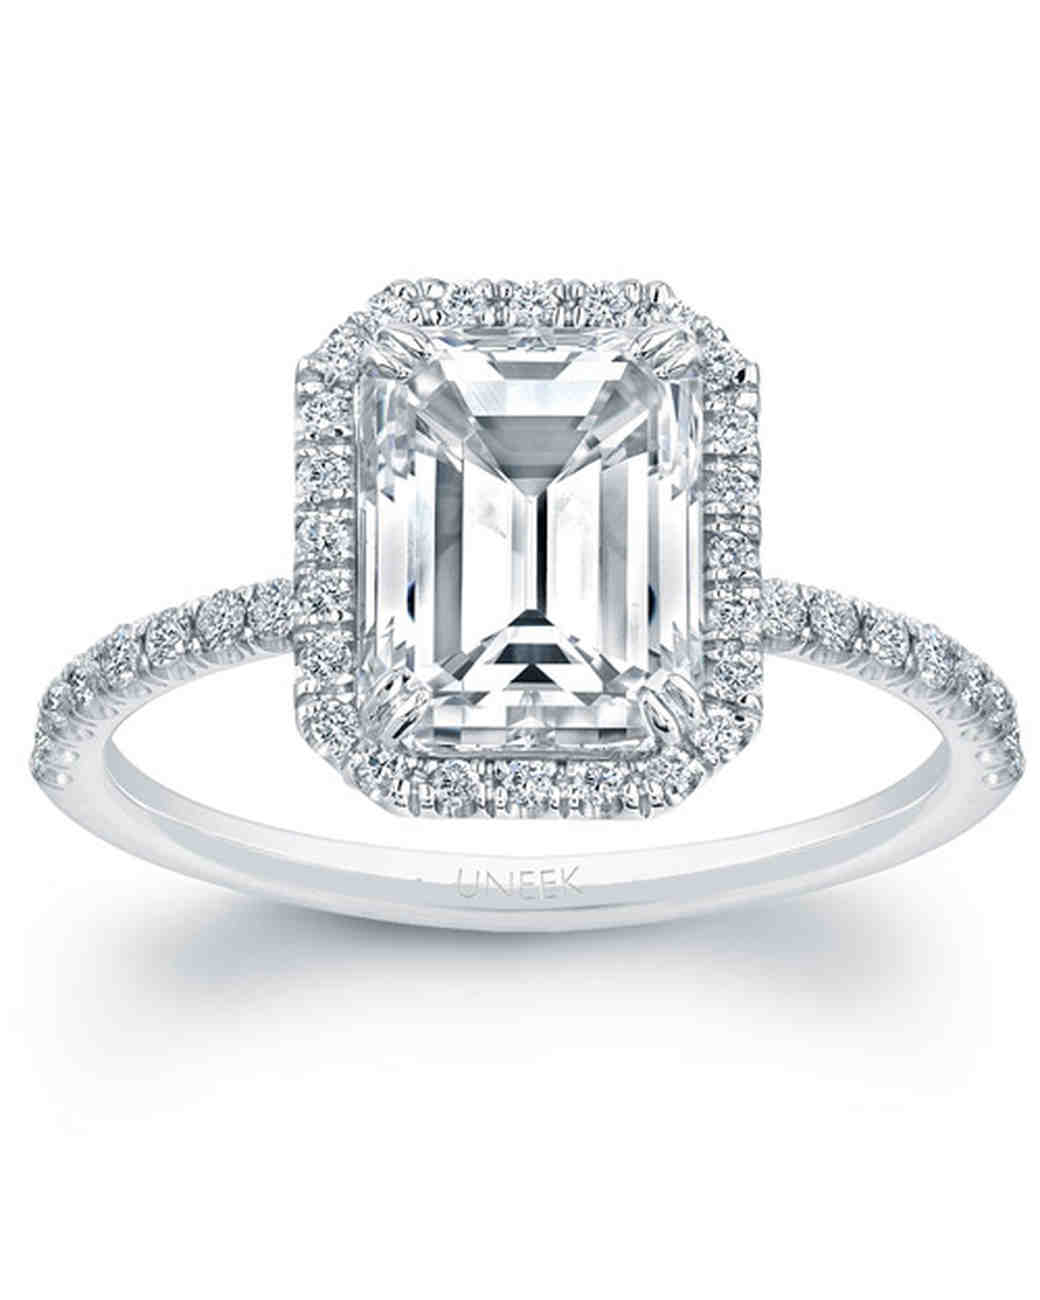 Uneek Jewelers Emerald-Cut Engagement Ring